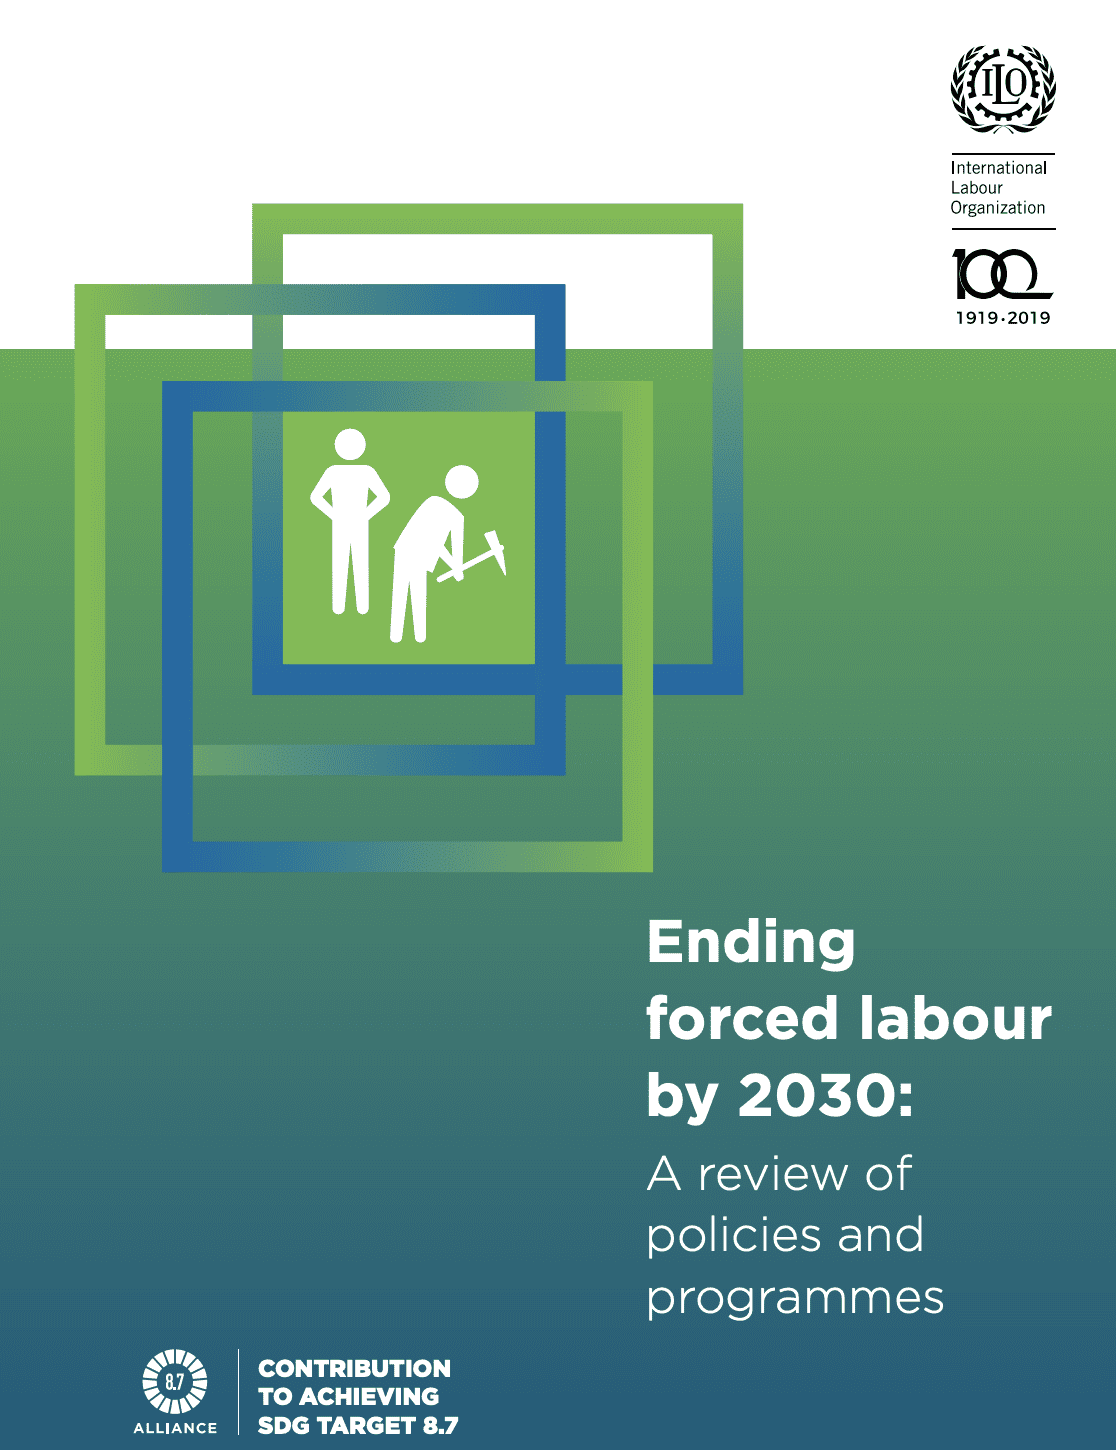 Ending forced labour by 2030: A review of policies and programmes